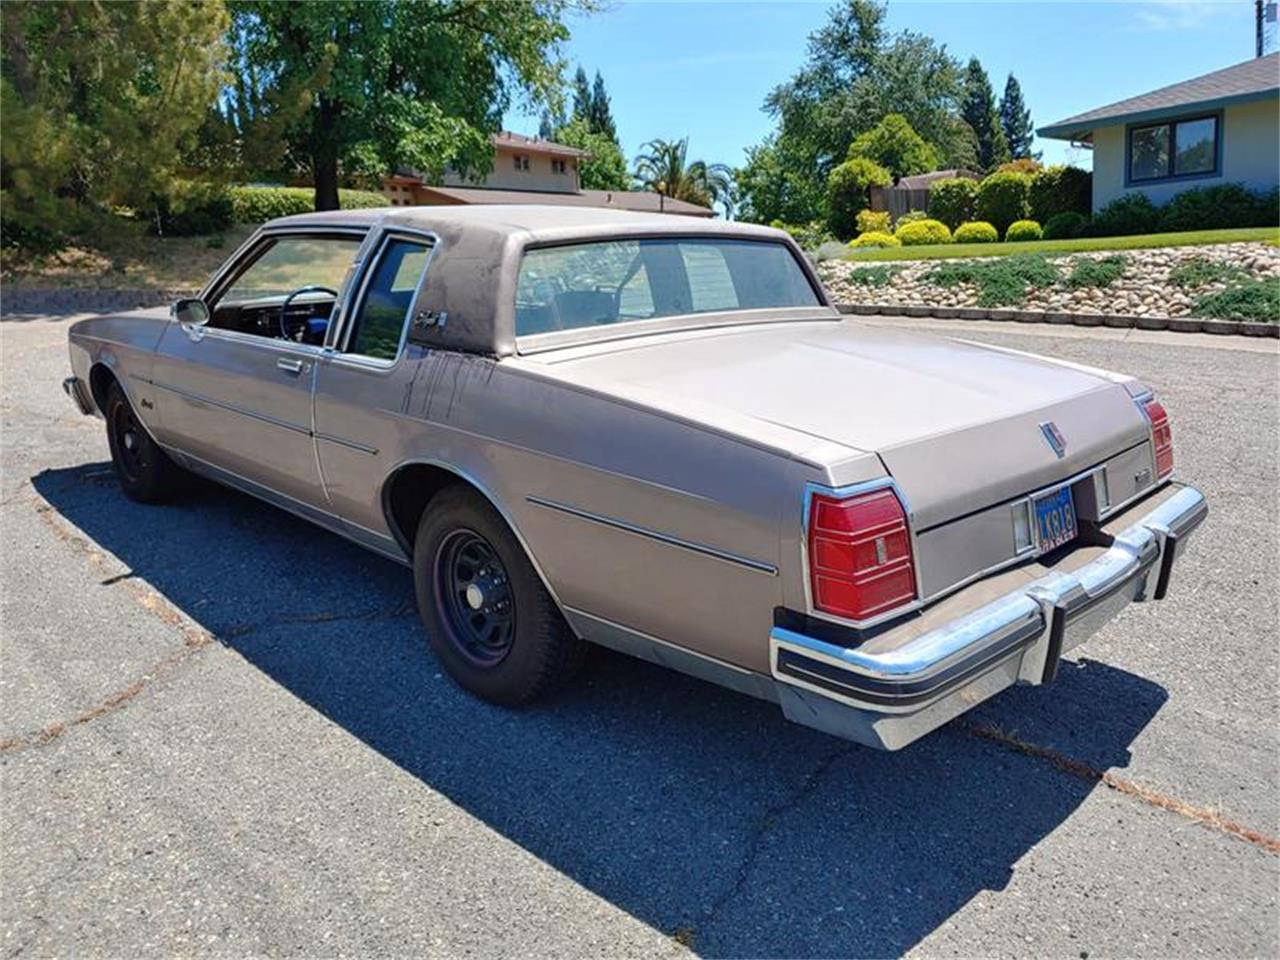 Large Picture of '83 Delta 88 located in California - $5,000.00 Offered by Classic Car Guy - QH3P